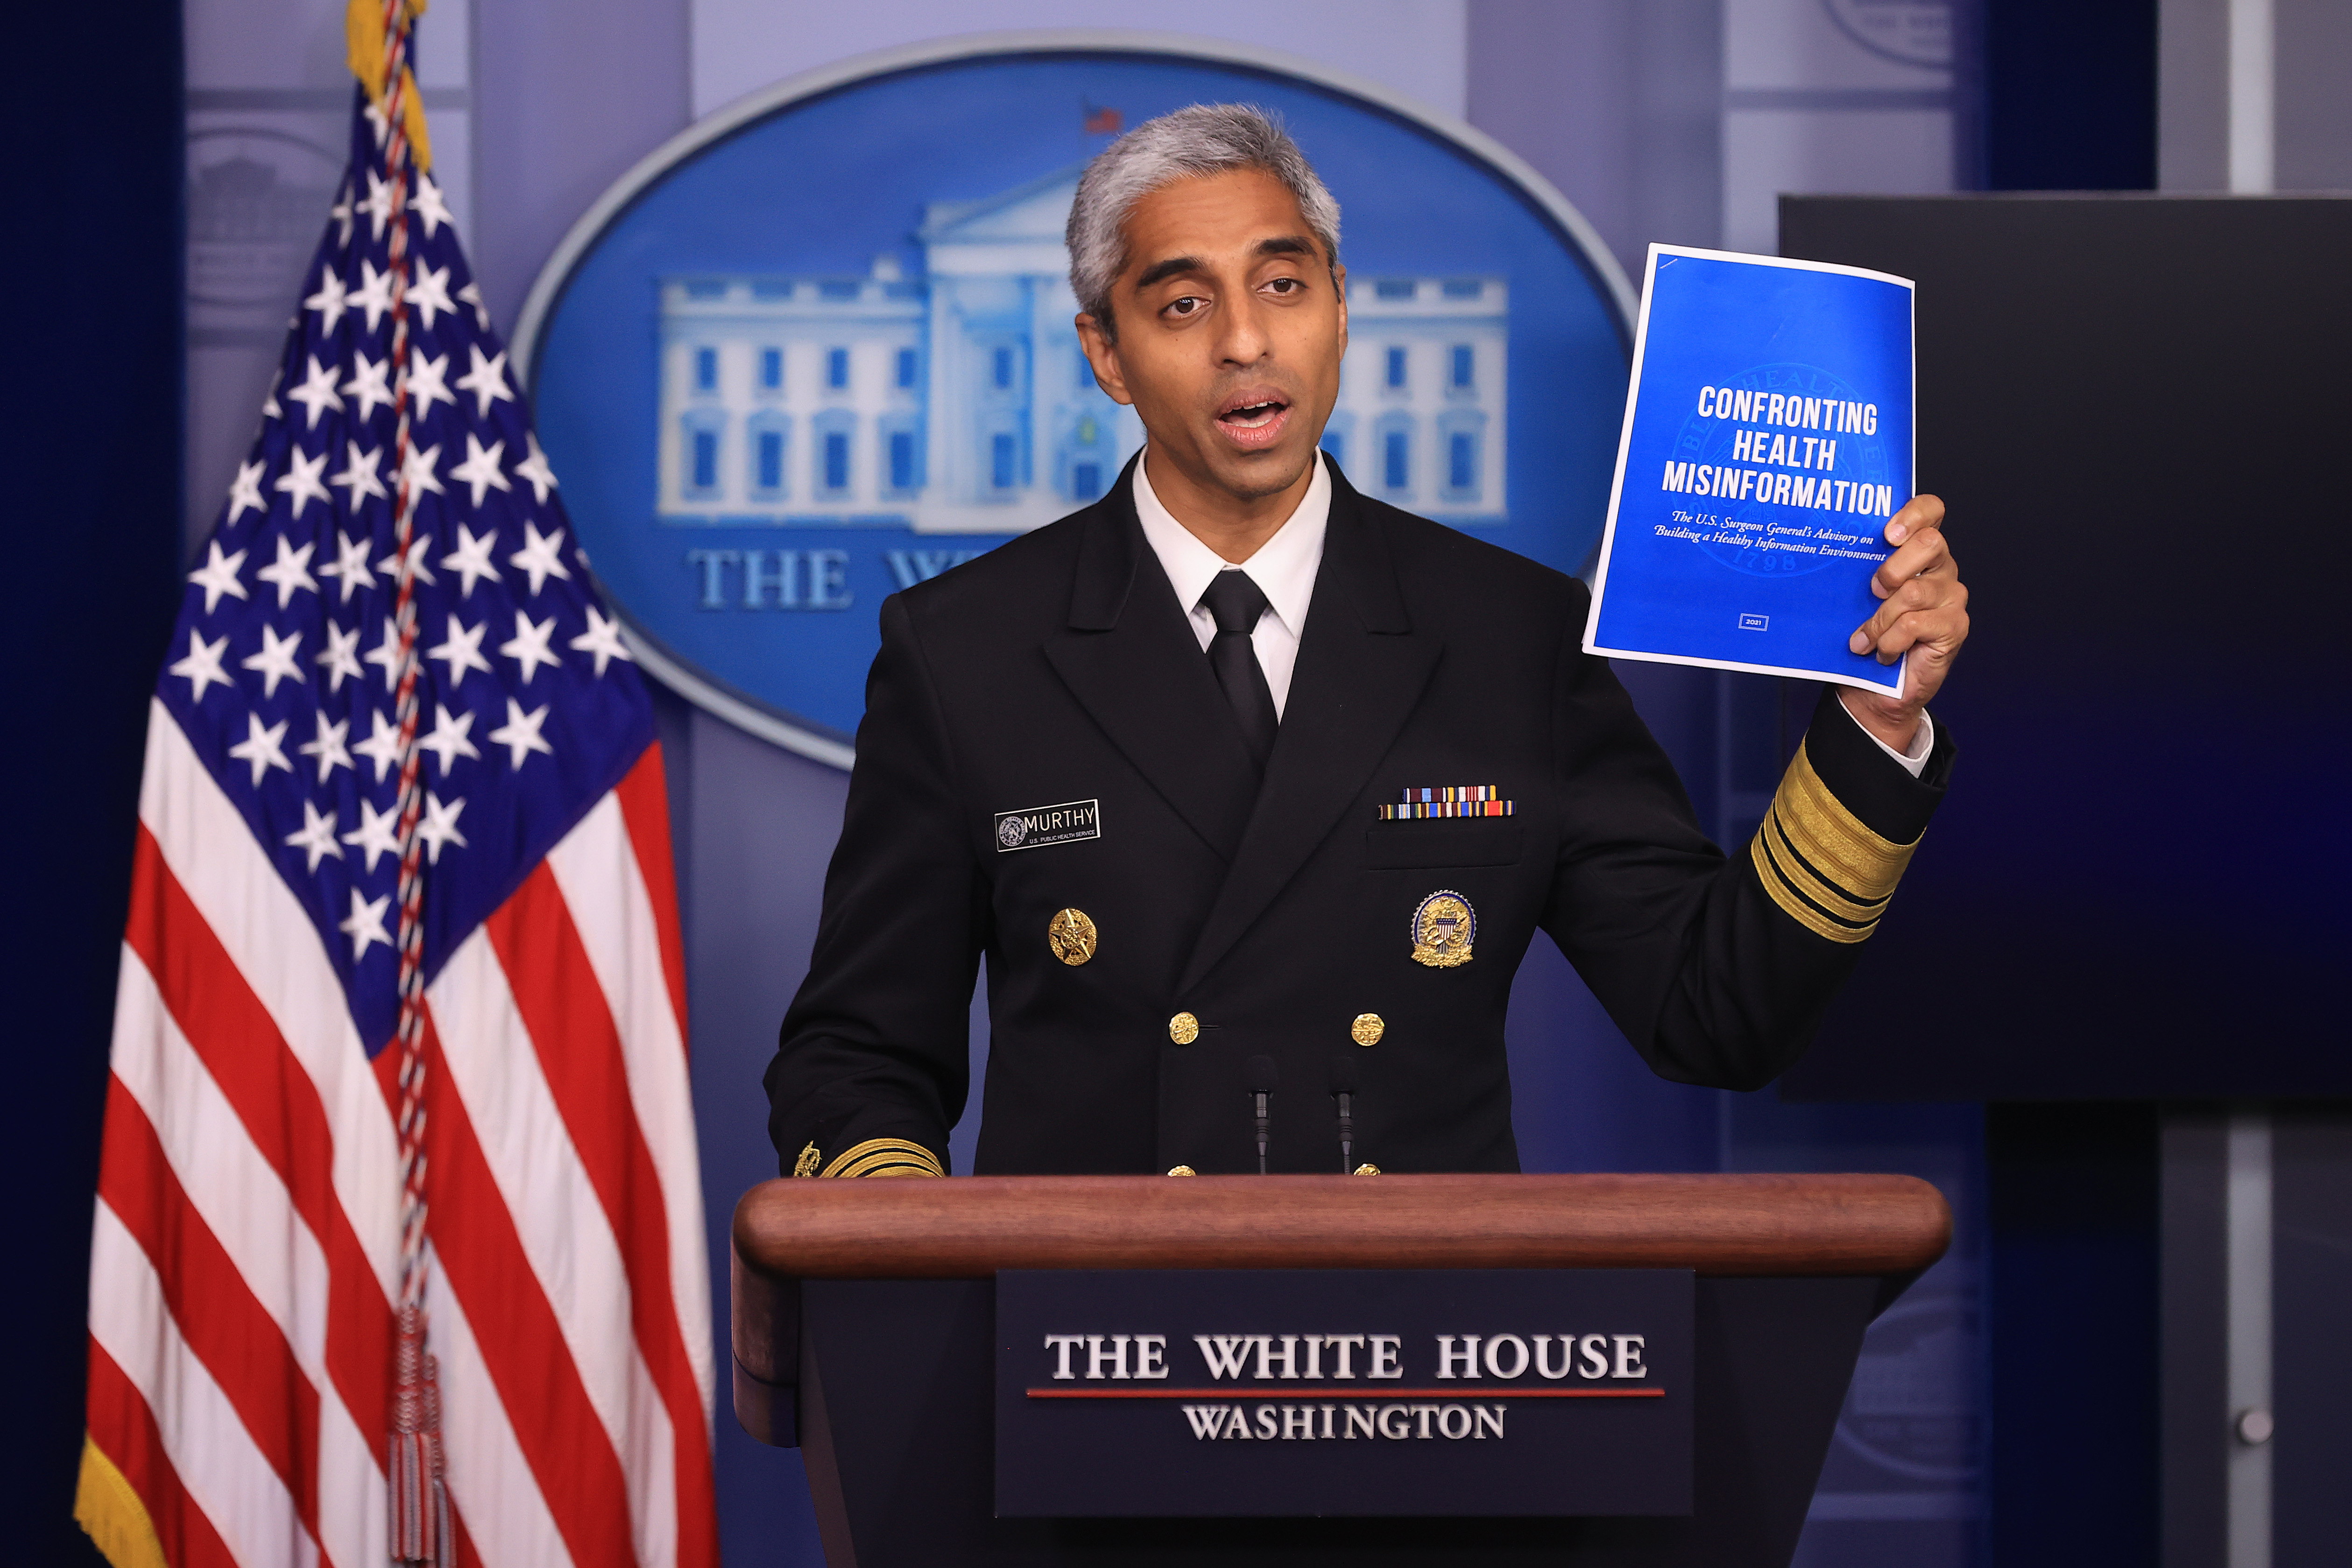 White House Press Secretary Psaki Holds Daily Briefing With Surgeon General Murthy